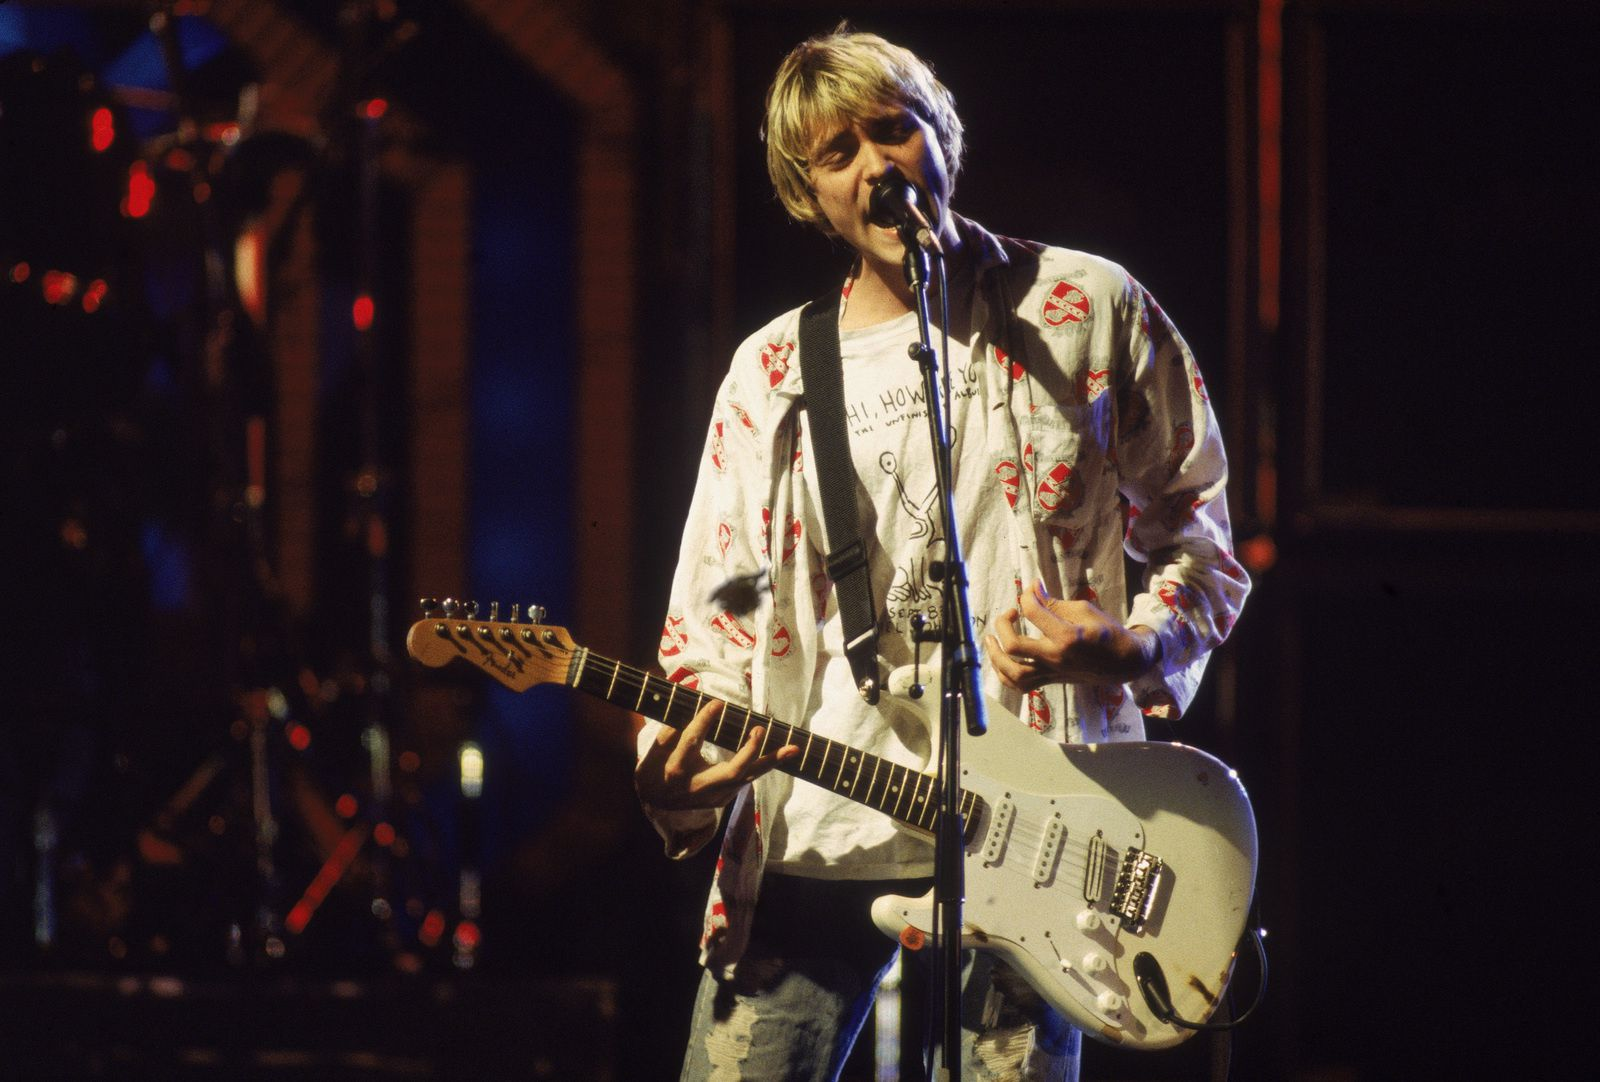 Kurt Cobain, Nirvana, Reading Festival in England (1992) - credit: Frank Micelotta - Getty Images